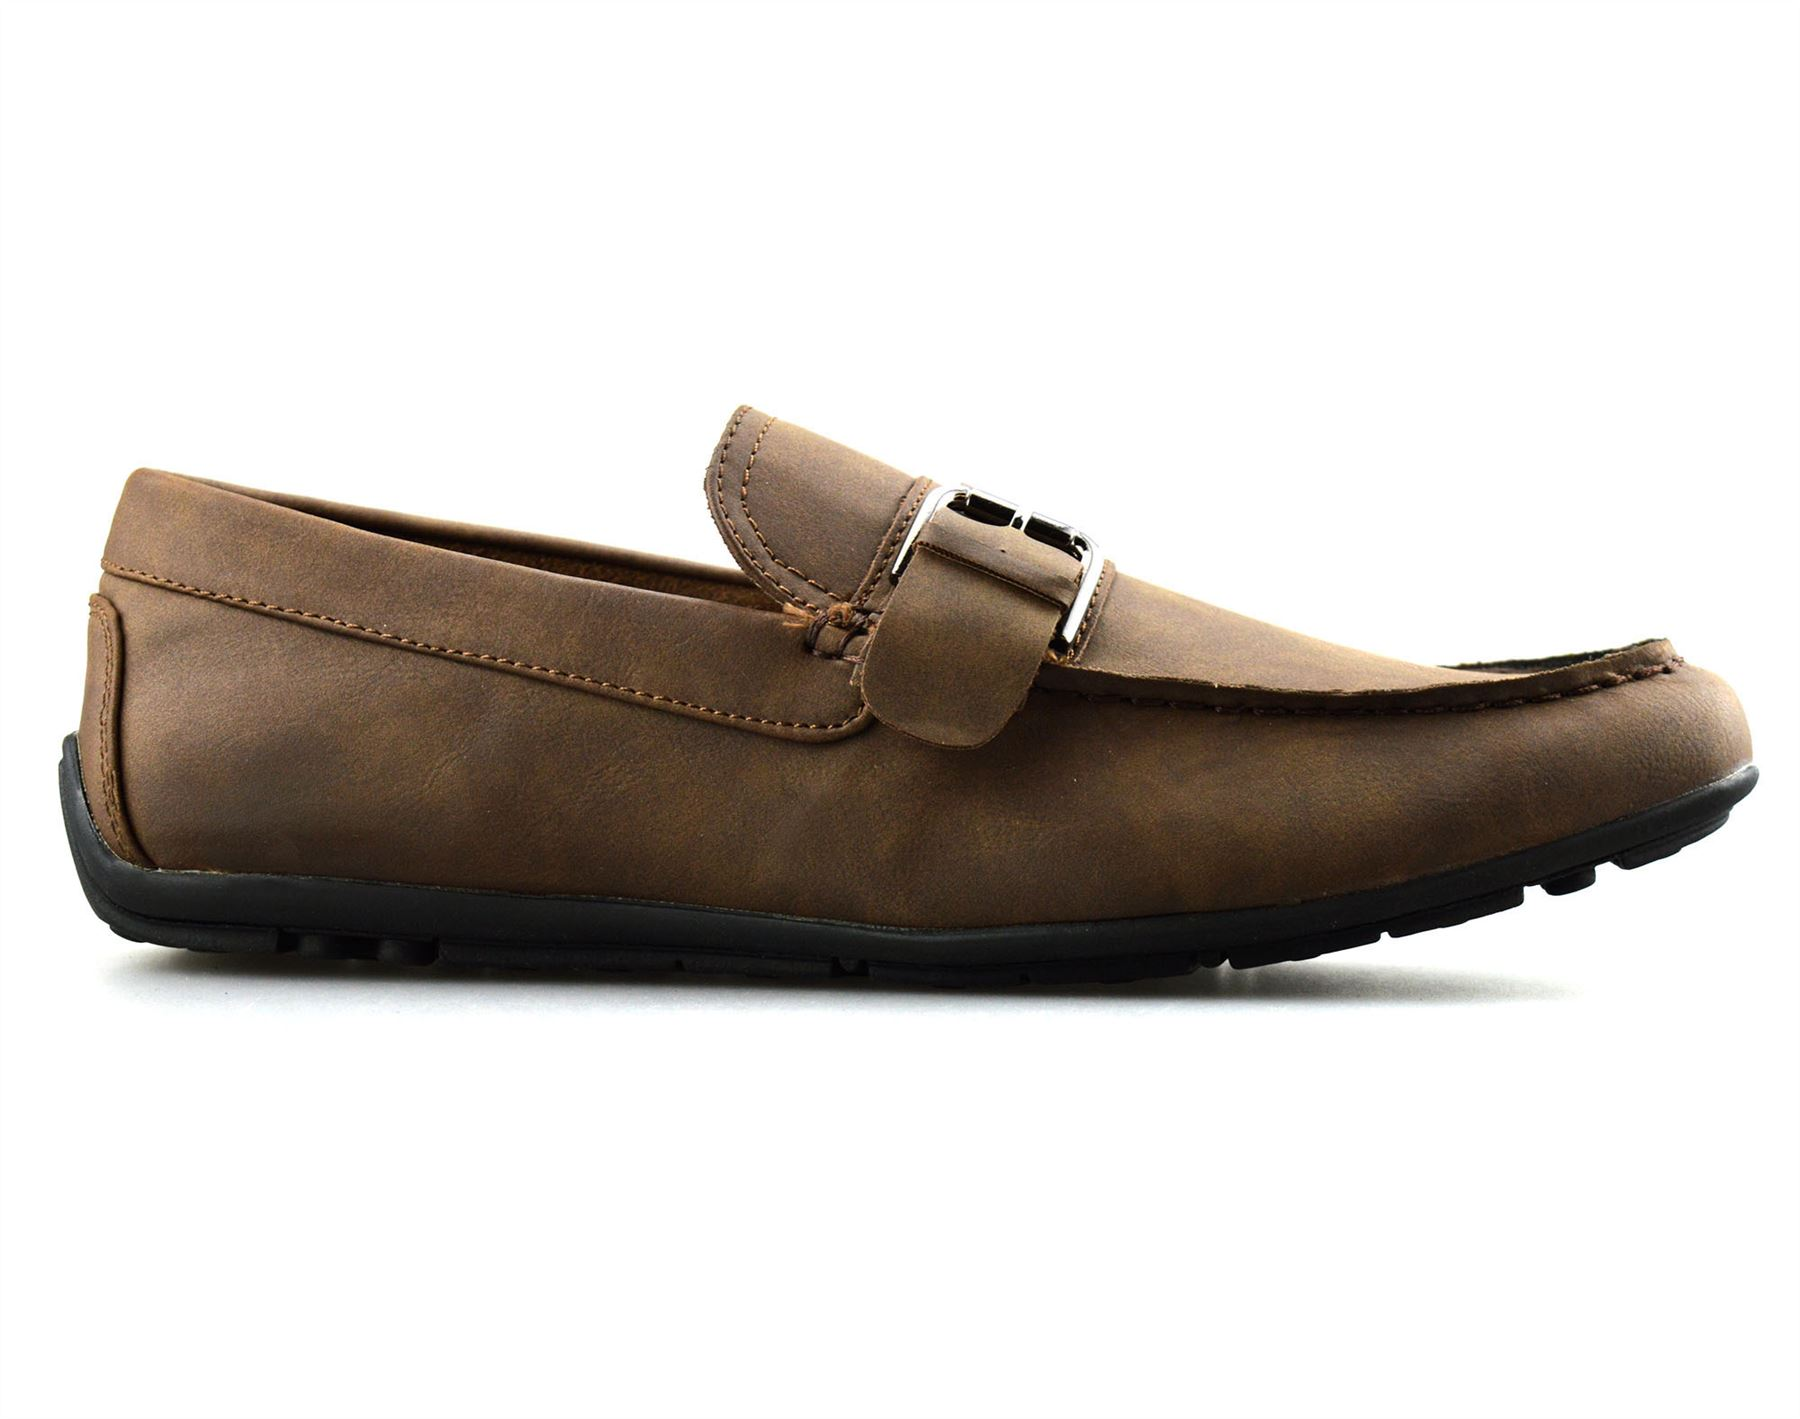 Mens-New-Slip-On-Boat-Deck-Casual-Mocassin-Designer-Loafers-Driving-Shoes-Size thumbnail 13